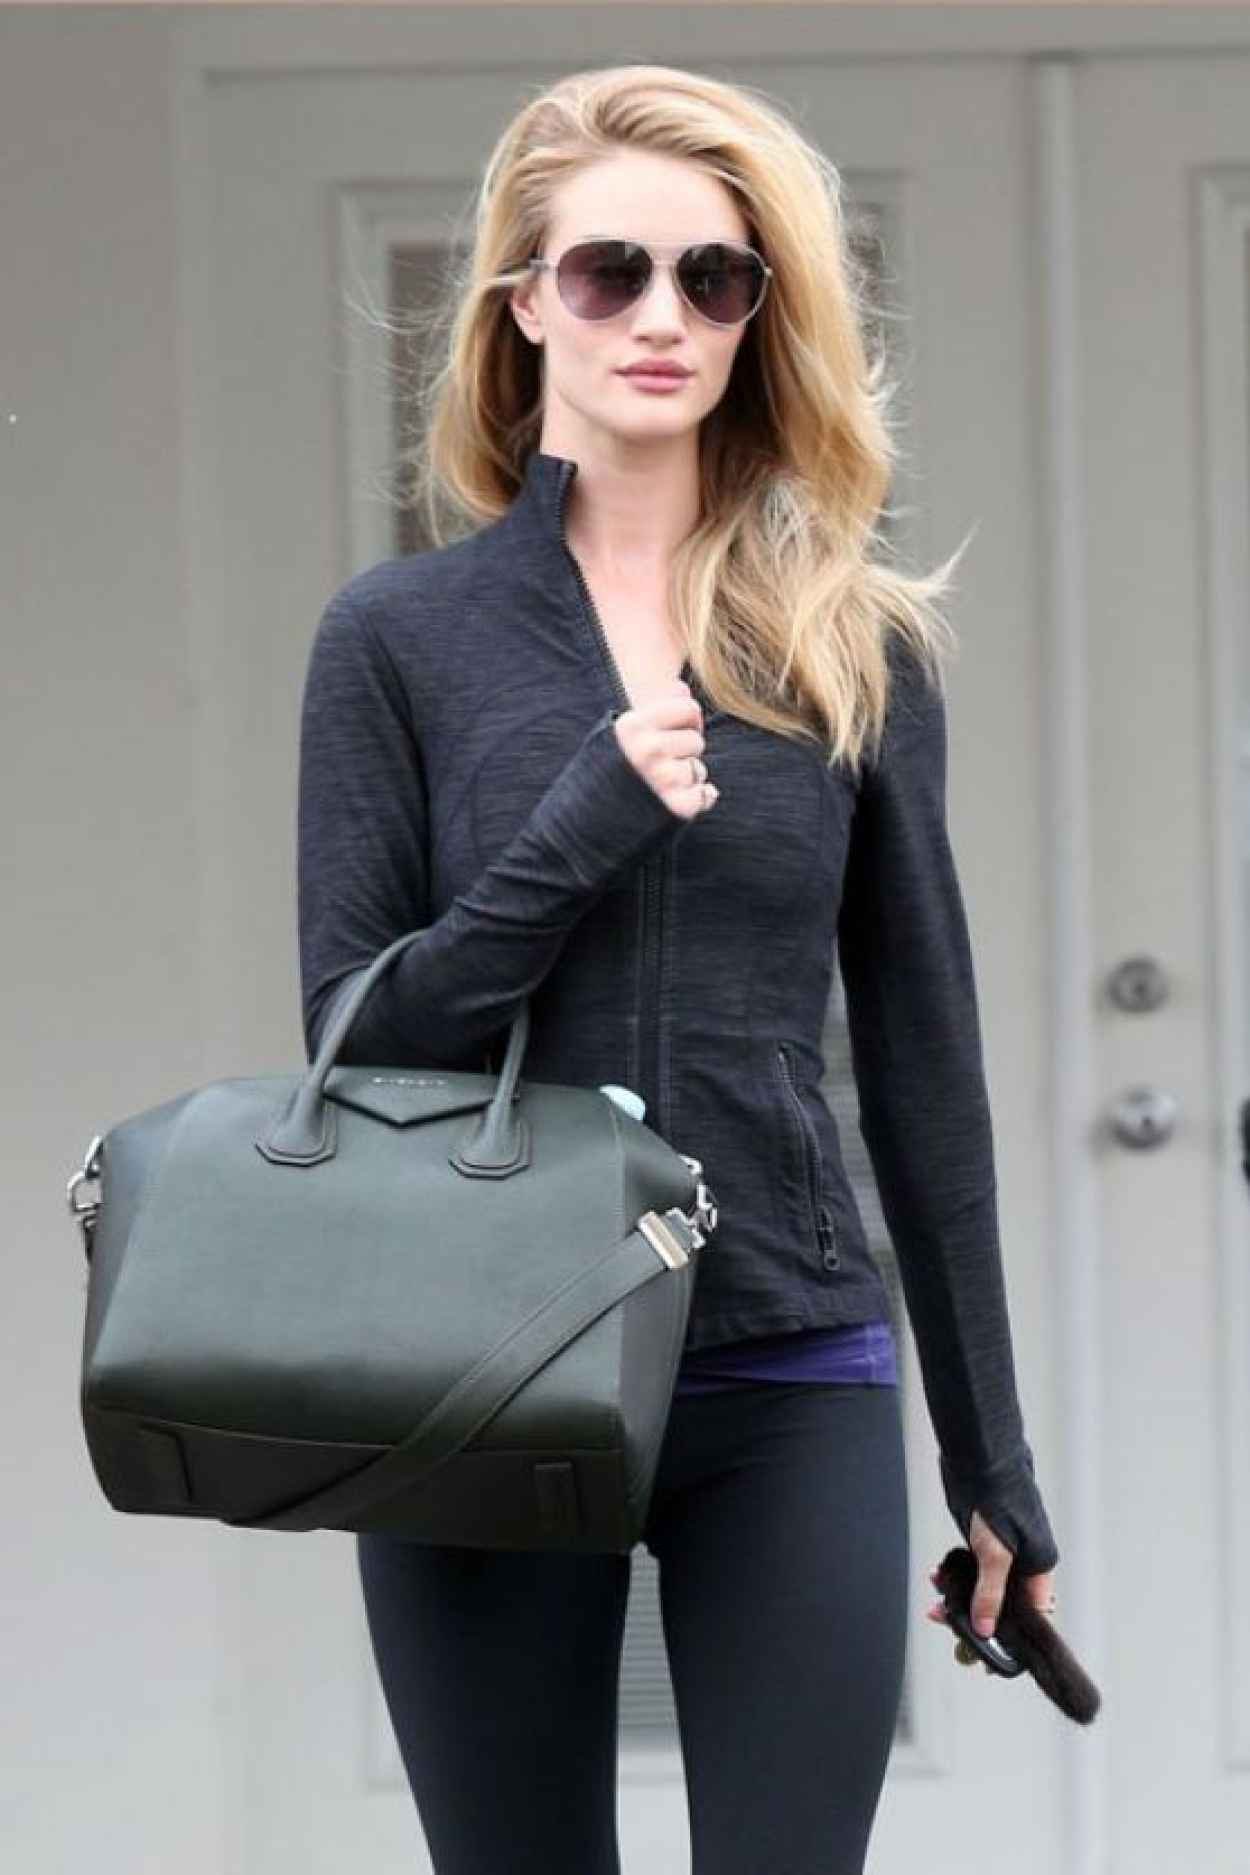 Rosie Huntington-Whiteley Style - Leaving the Gym - Los Angeles, January 2015-1